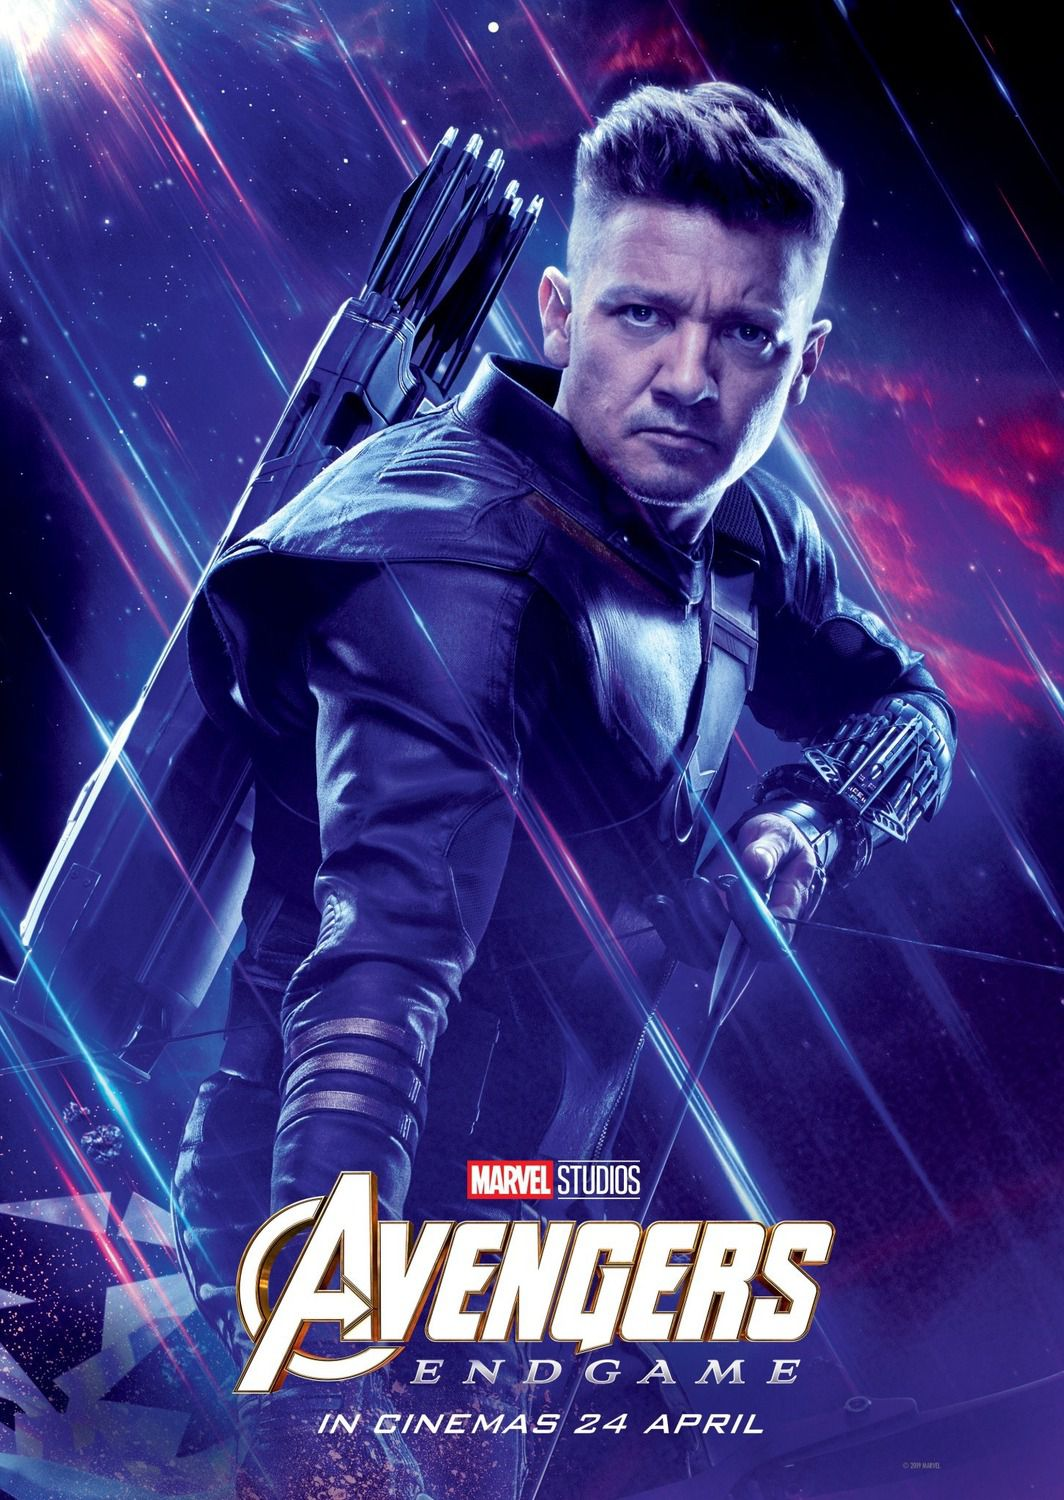 Jeremy Renner as Occhio di Falco Hawkeye